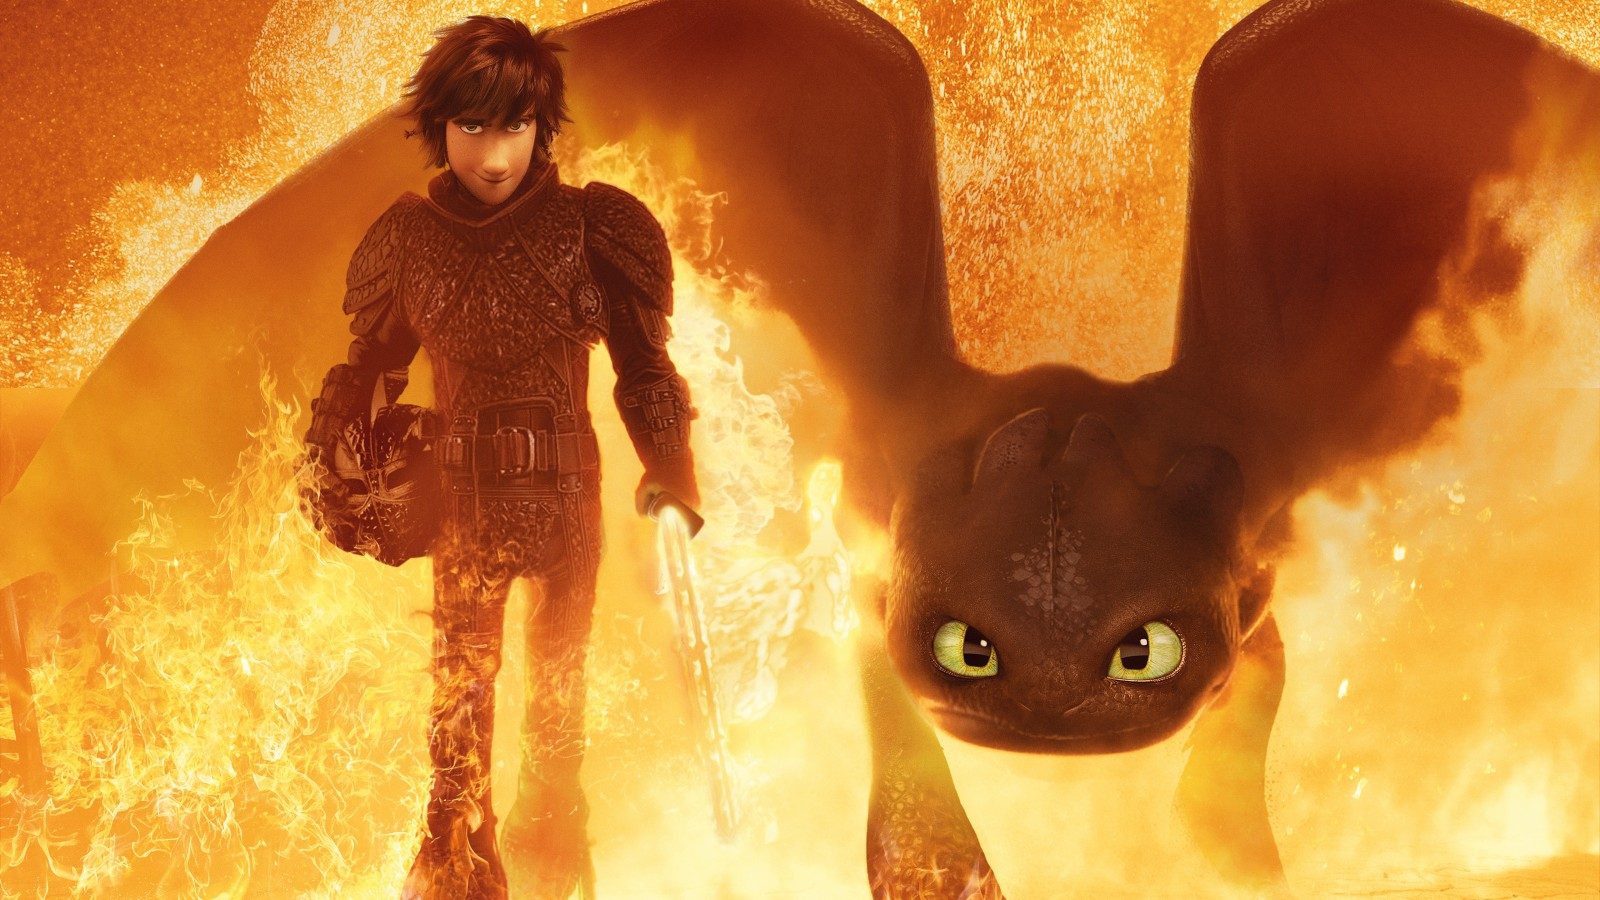 Fall Wallpaper Dual Monitor Hiccup Toothless How To Train Your Dragon 3 4k 5k